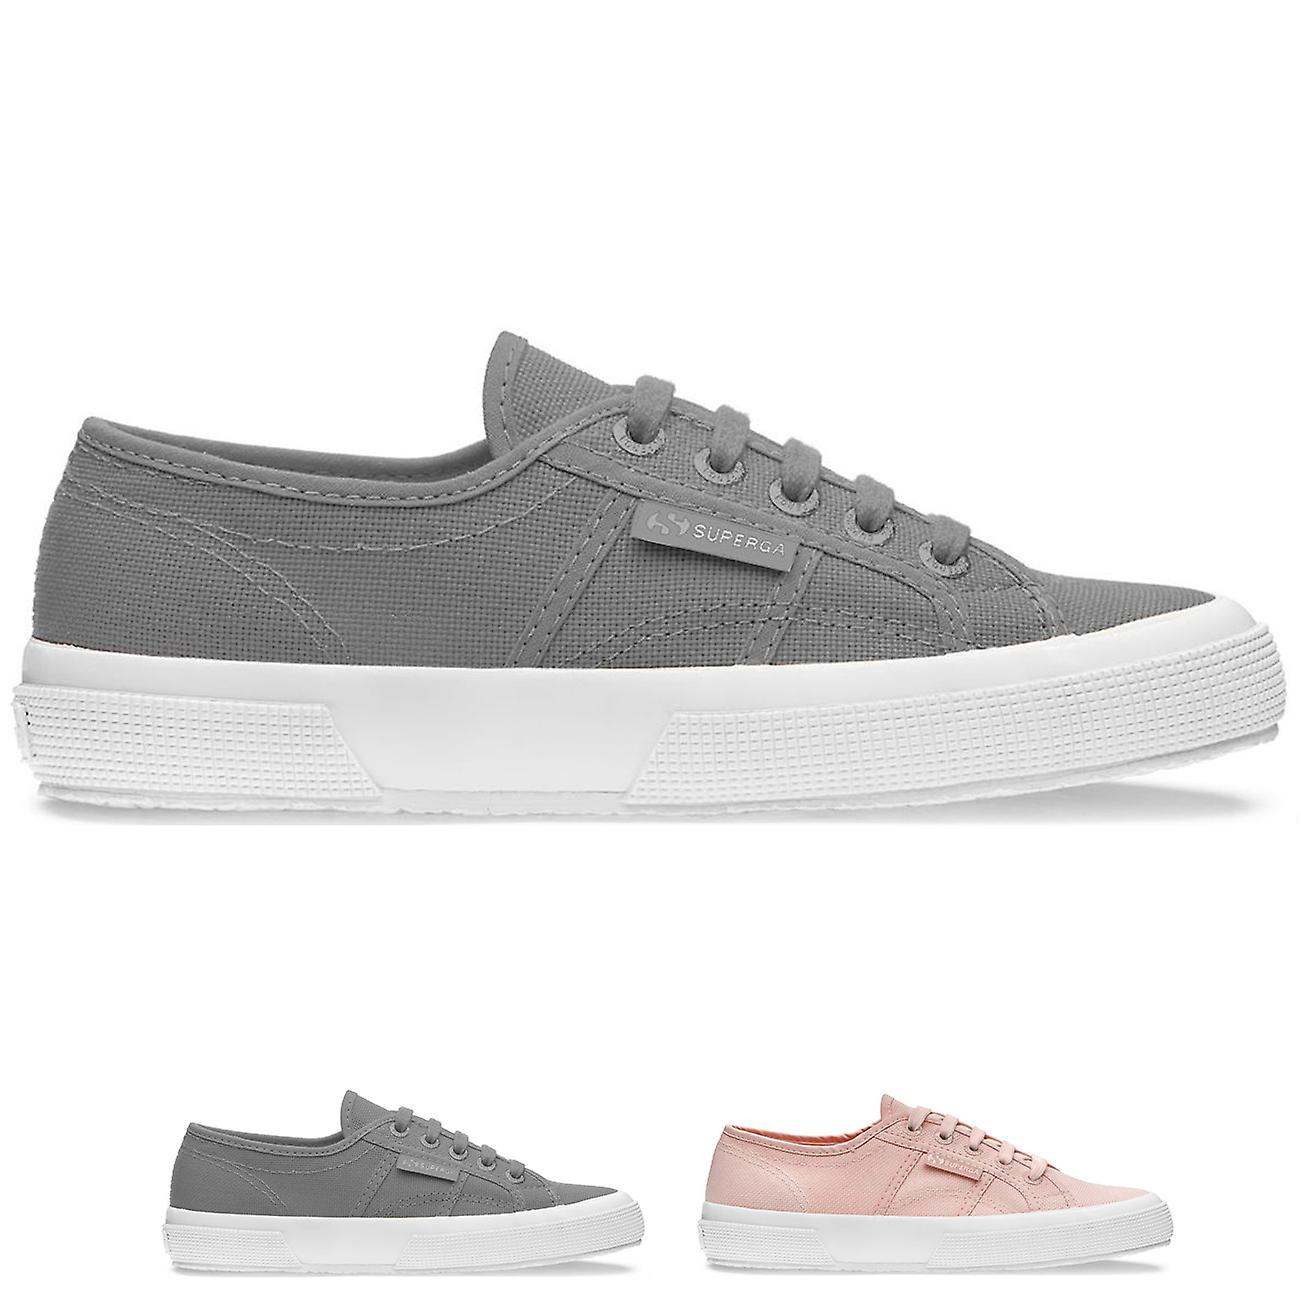 d1f8a073dfc Womens Superga 2750 Classic Low Top Fashion Flat Lace Up Casual Trainers